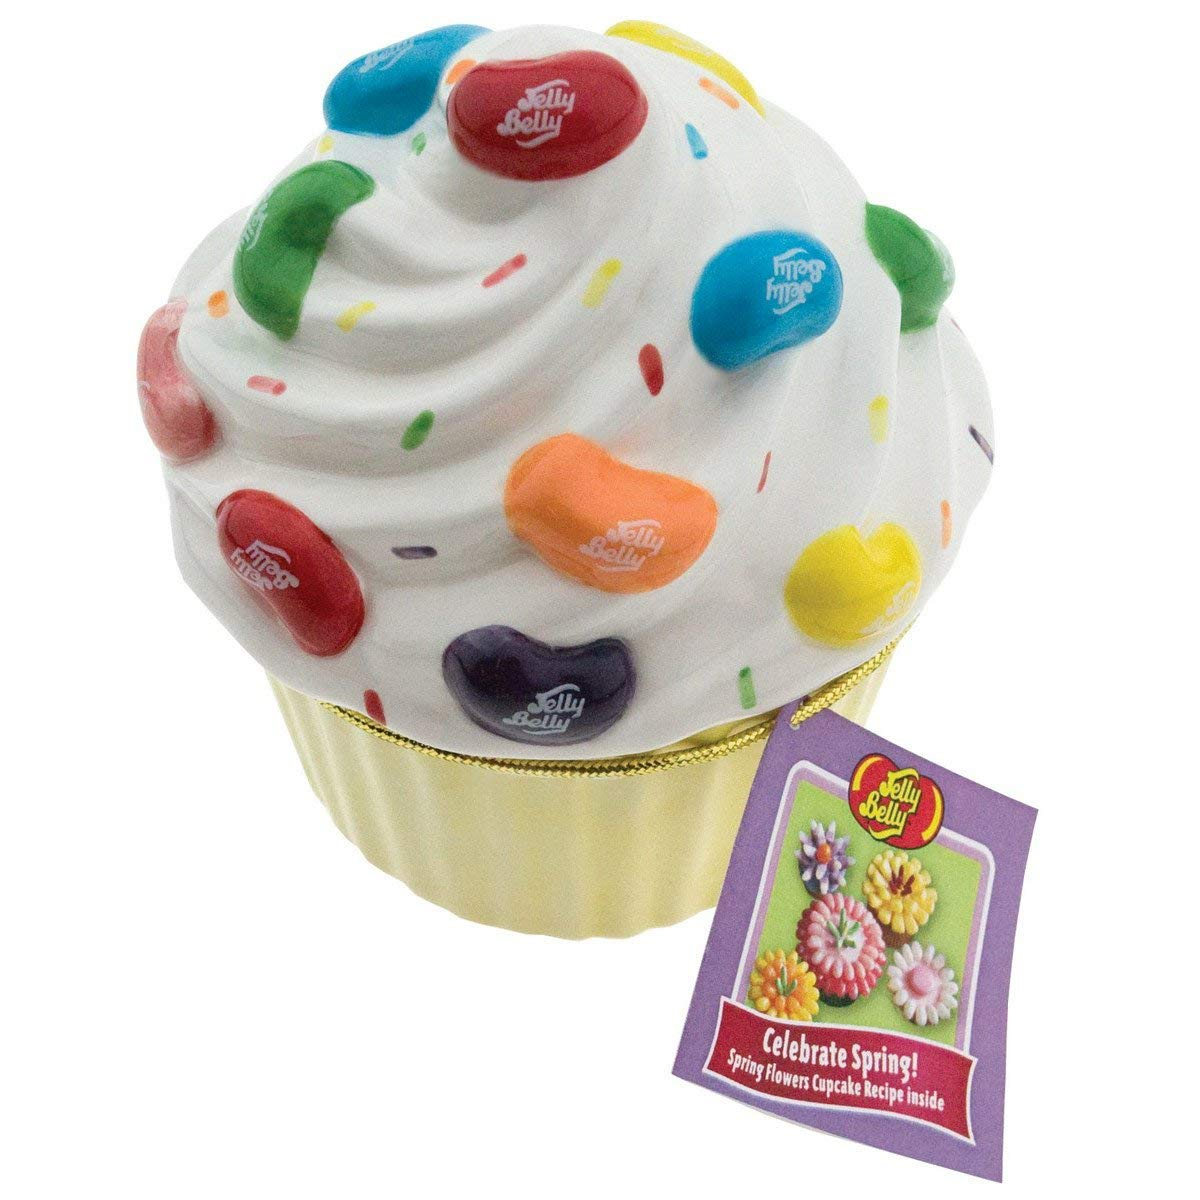 Ceramic Cupcake Candy Dish with Jelly Belly 20 Flavors Mix jelly beans